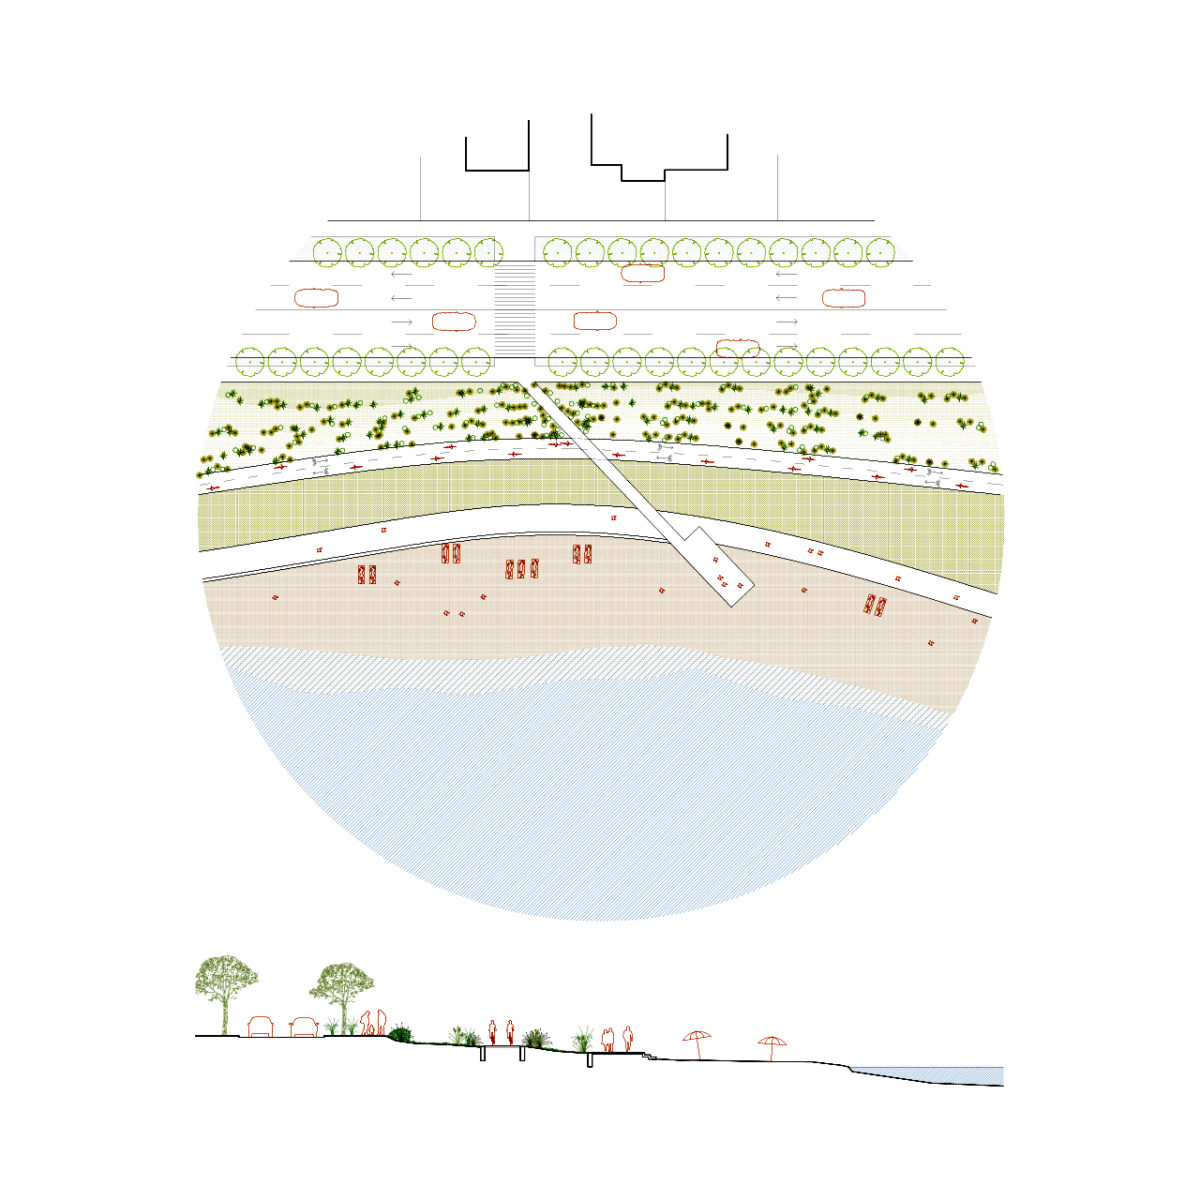 Somes river beach detail plan and section